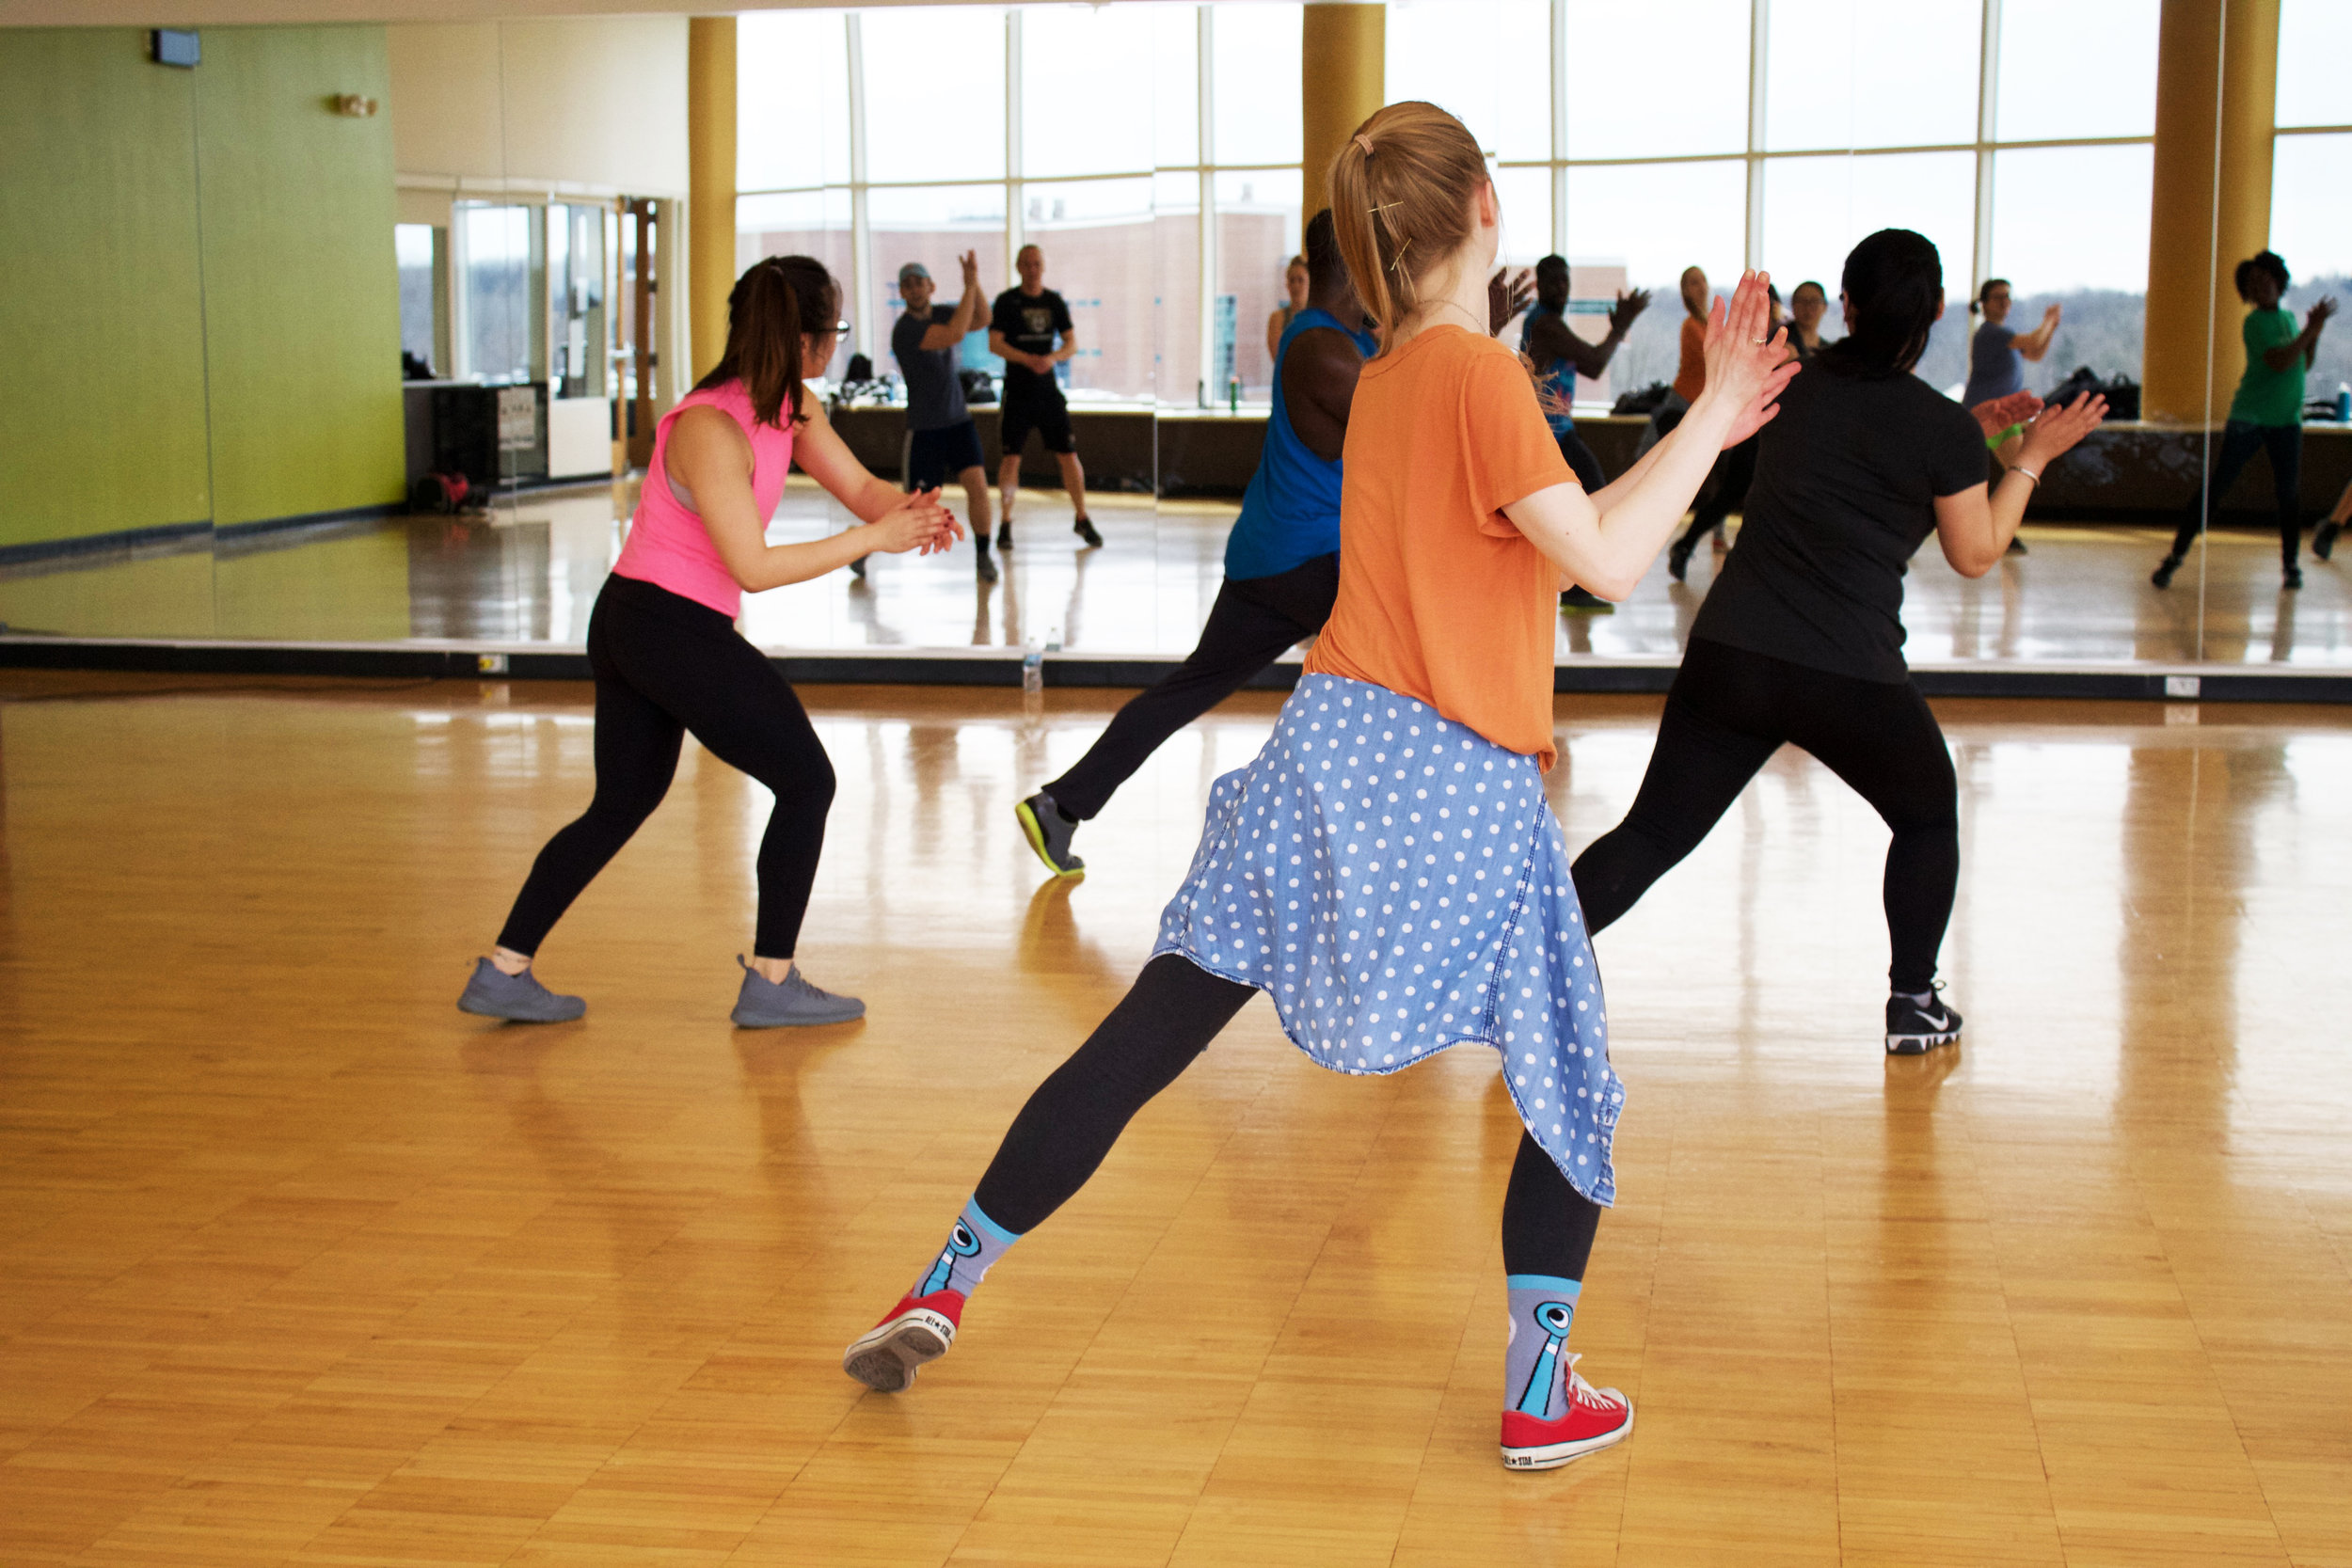 Bump up the fun with our  Zumba  dance fitness classes. Dance to the energetic latin and hip hop beats and get your sweat on. Each class mixes high and low intensity sequences to burn the most calories and make the workout suitable for all ages and levels.